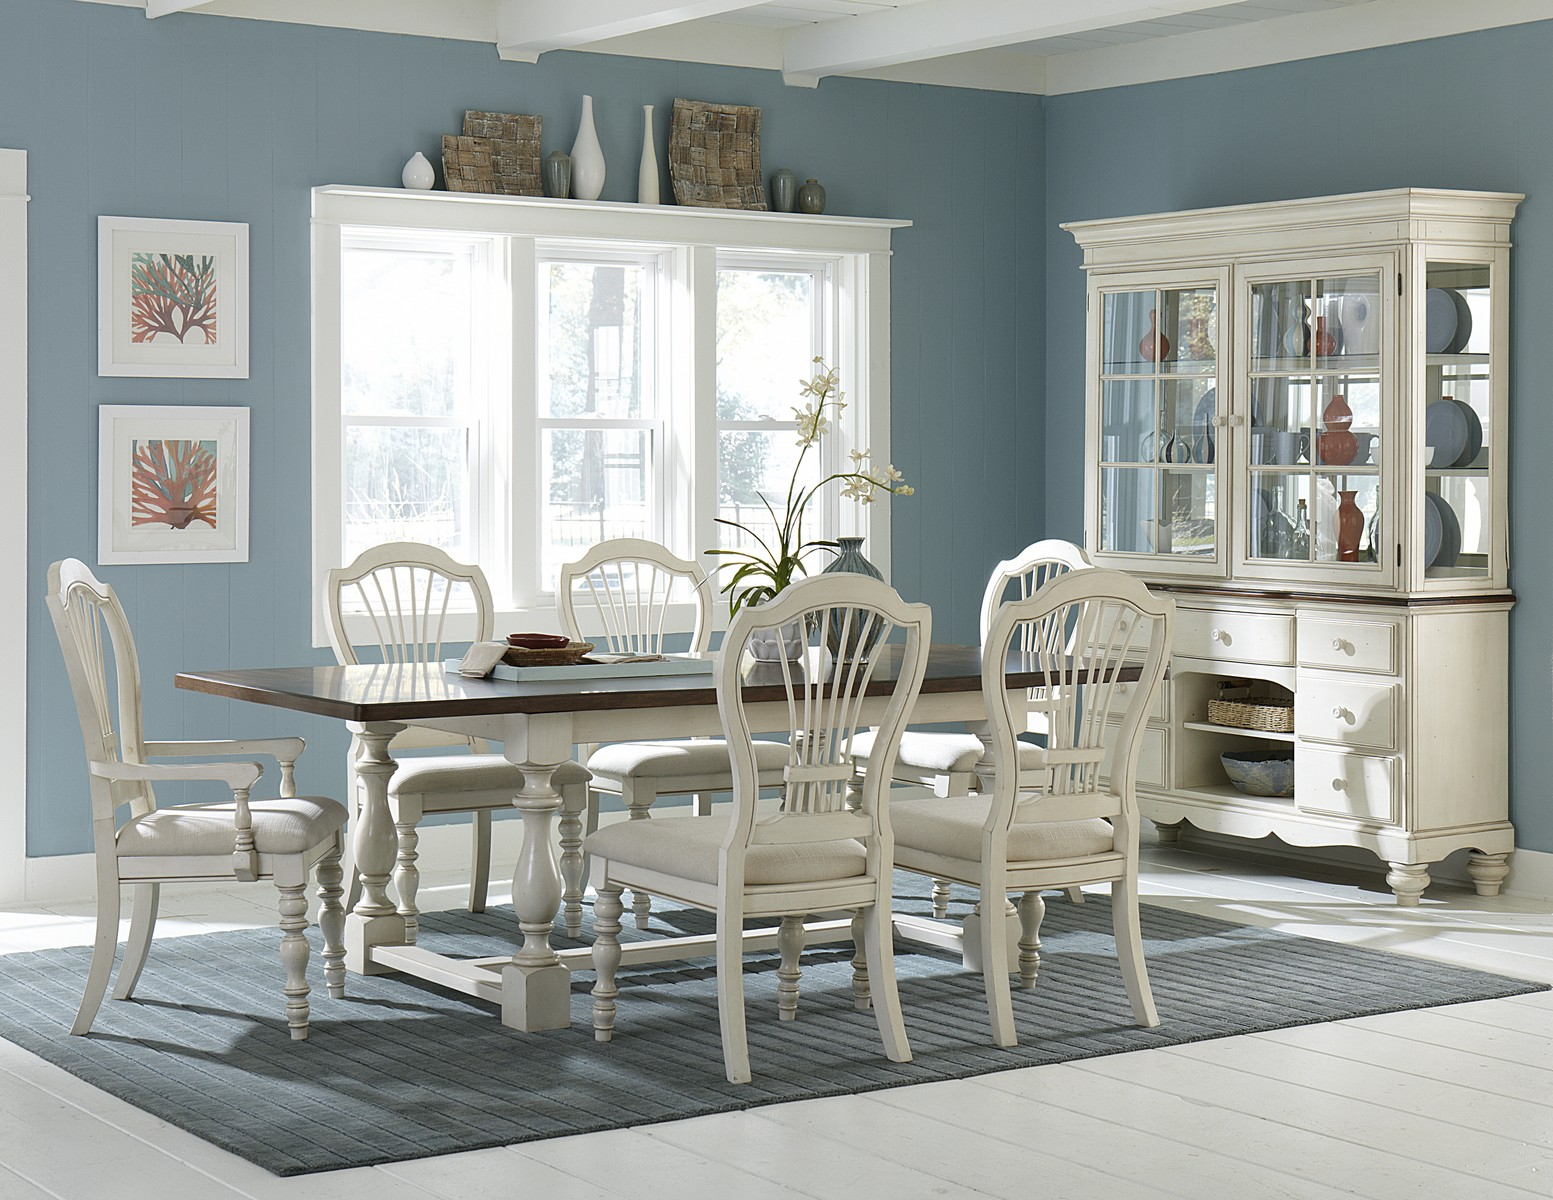 Hillsdale Pine Island 7 PC Trestle Dining Set with Wheat Back Chairs - Old White